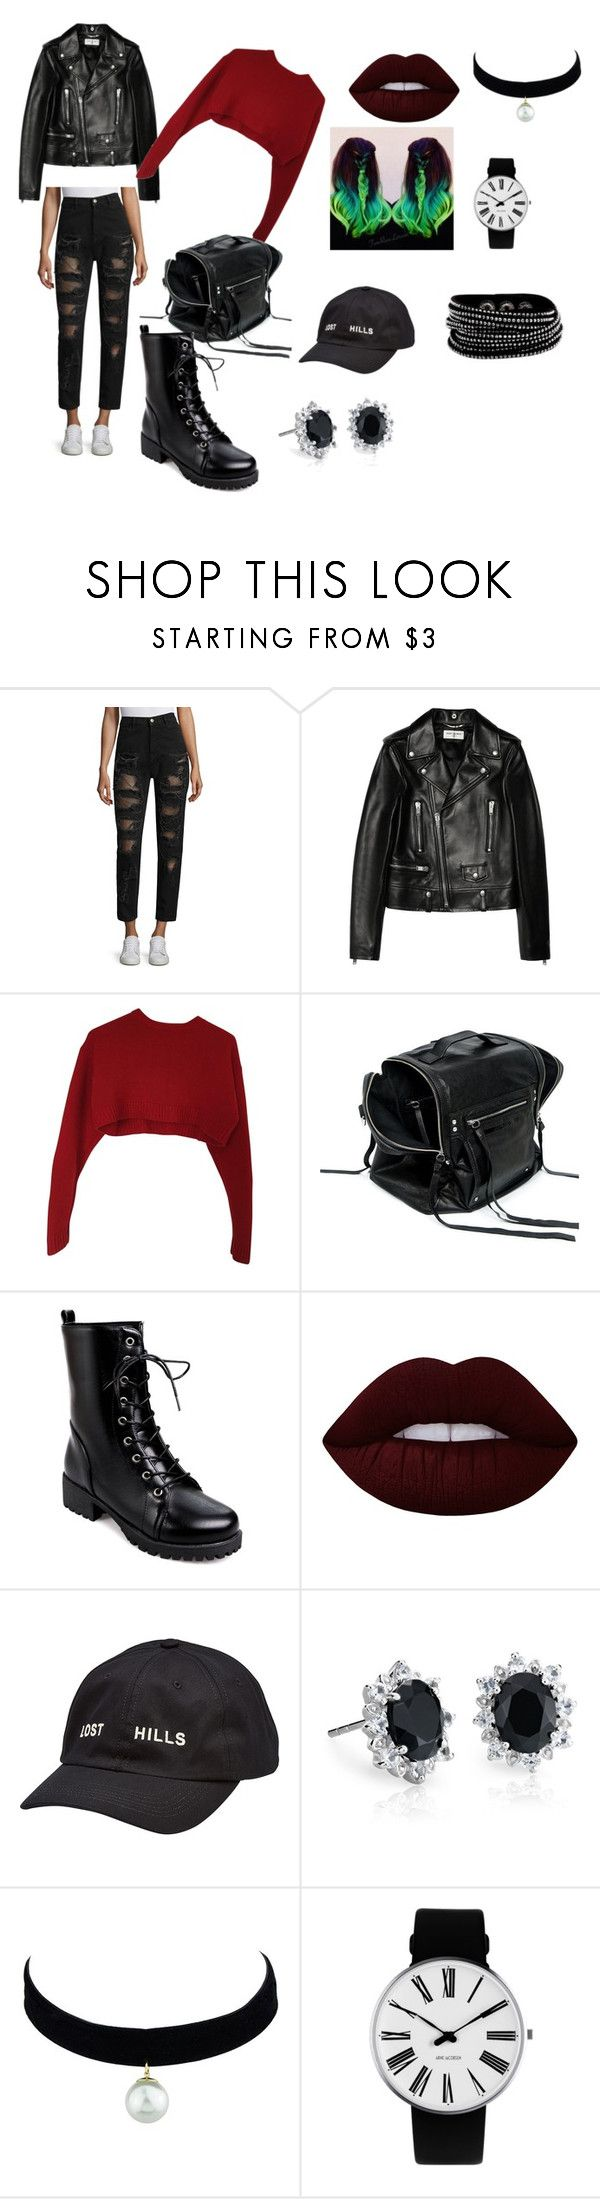 """""""Dauntless Outfit"""" by hepangborn on Polyvore featuring Tommy Hilfiger, Yves Saint Laurent, Miu Miu, McQ by Alexander McQueen, Lime Crime, Yeezy by Kanye West, Blue Nile, Rosendahl and divergent"""